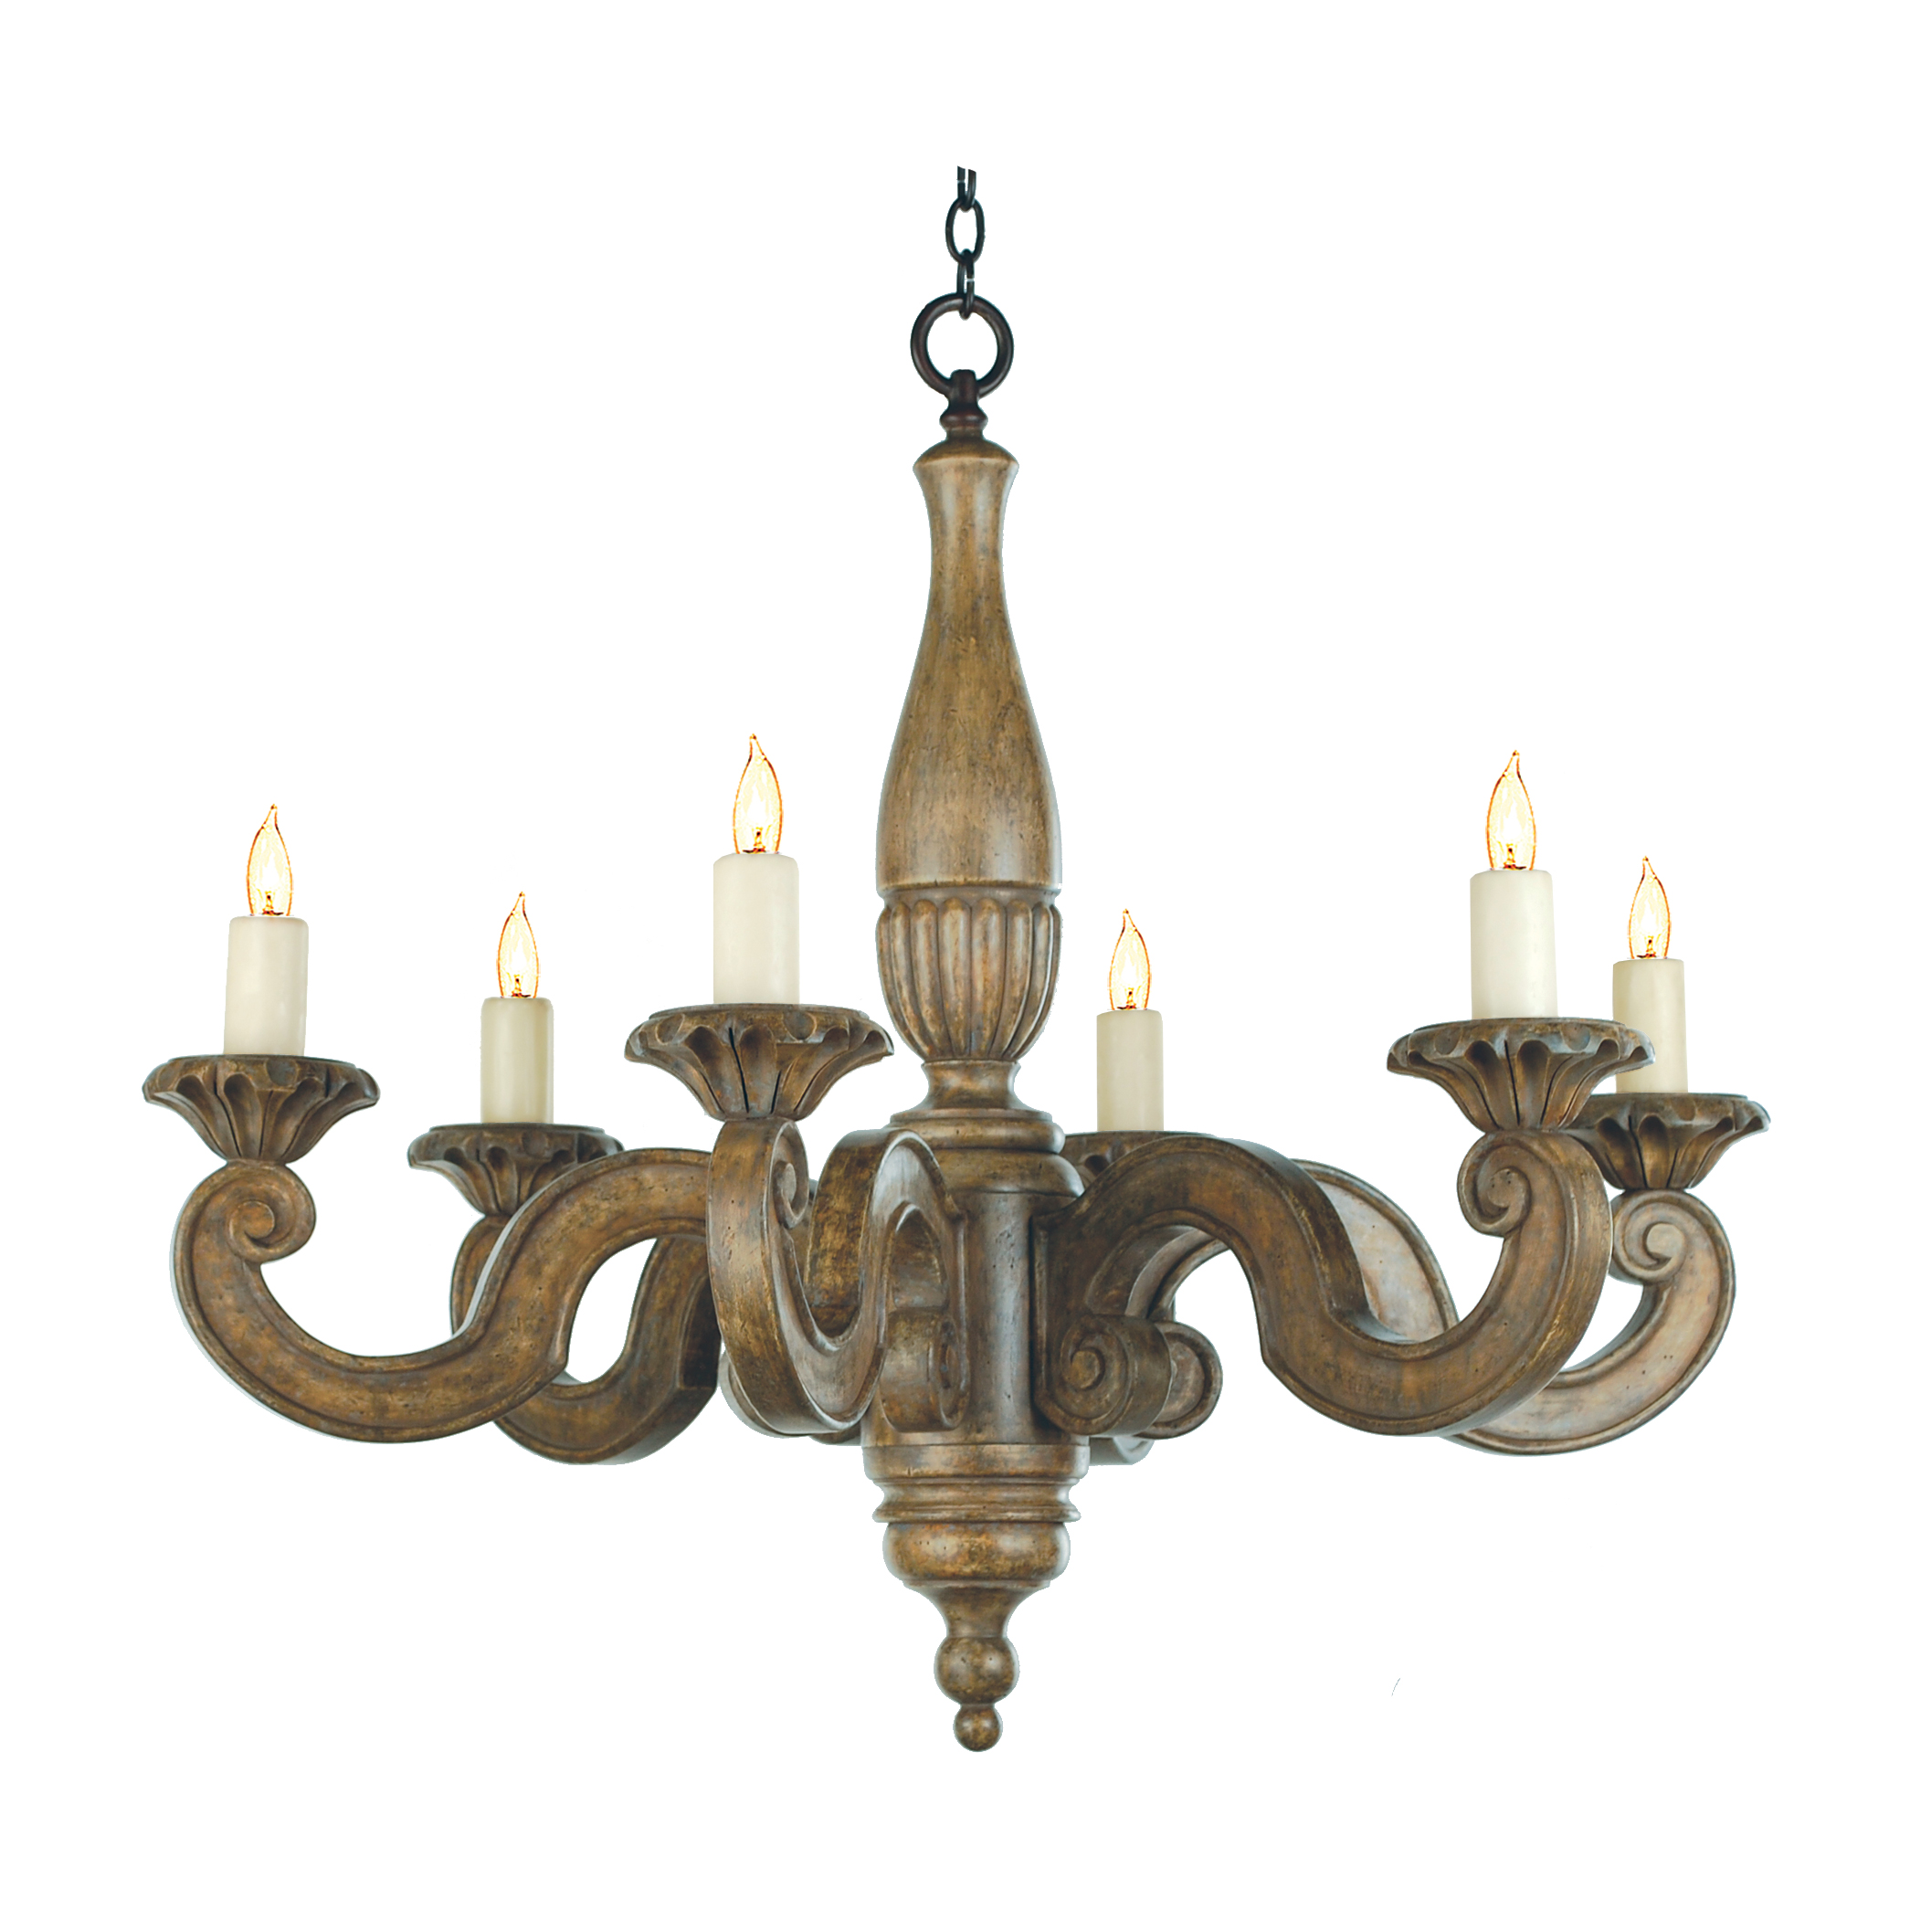 7054 43 dana creath designs 7054 43 six light hand carved wood chandelier aloadofball Gallery